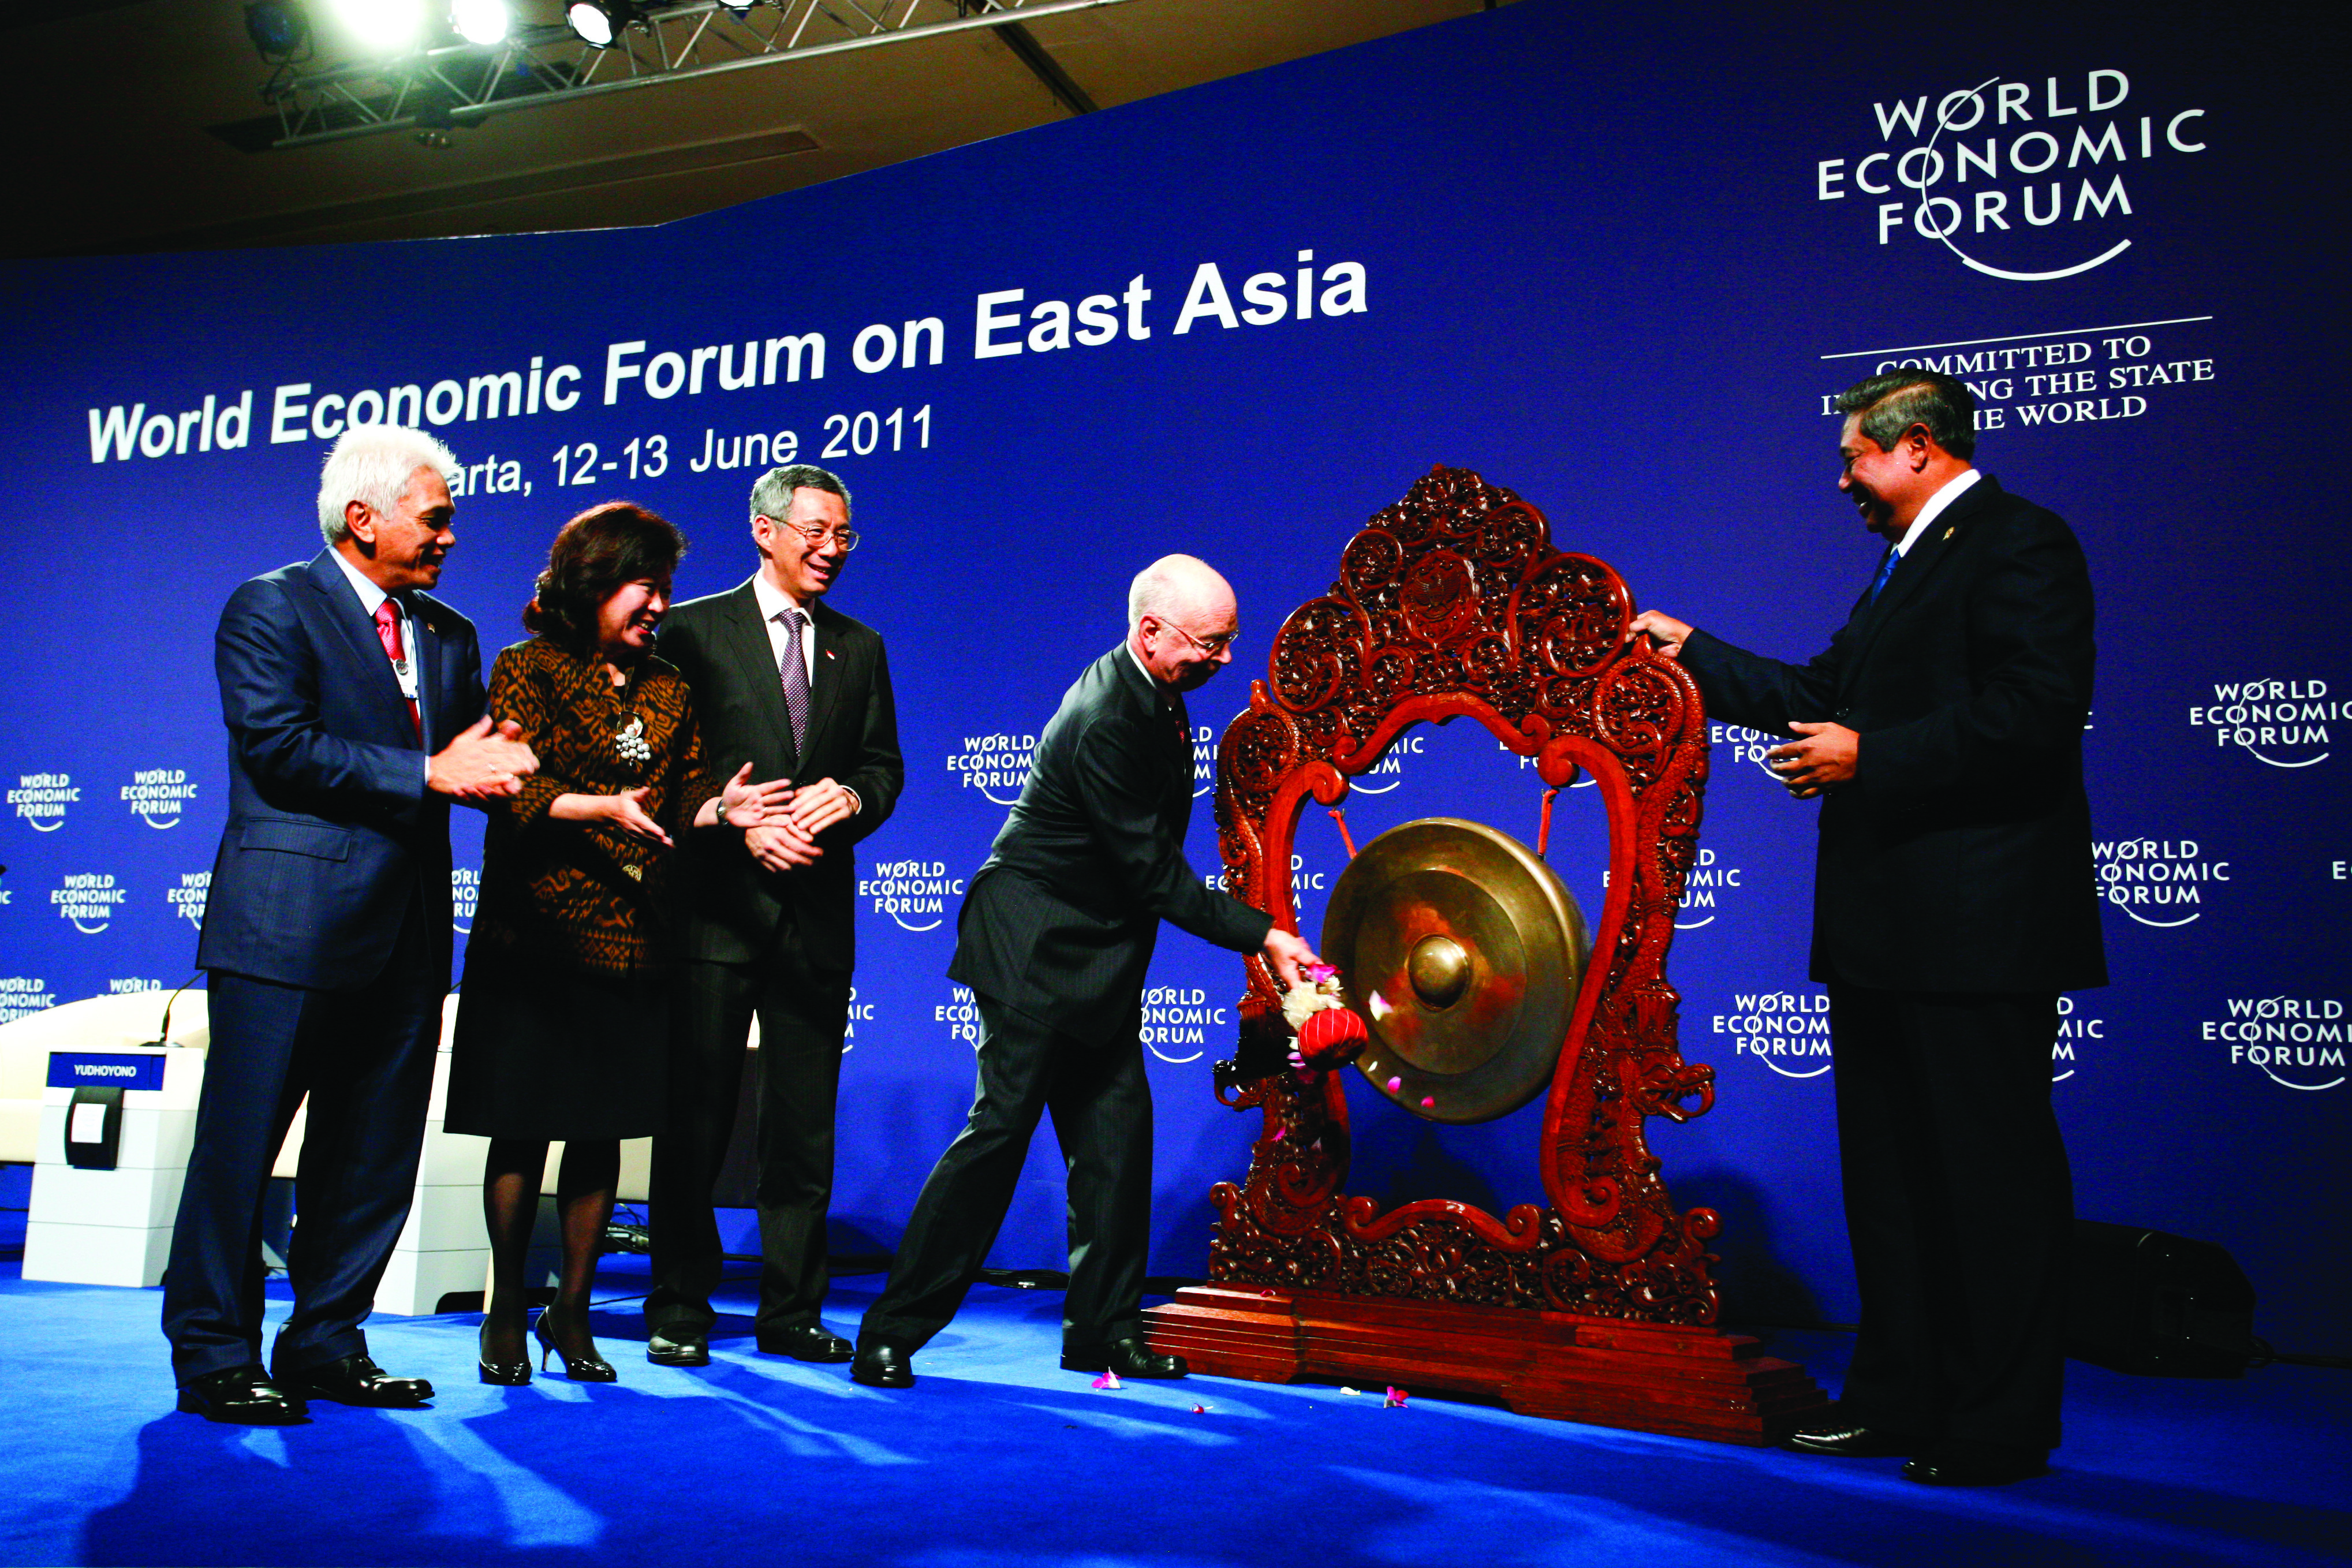 Klaus Schwab, Executive Chairman of the World Economic Forum signals the opening of the Meeting in a traditional gong ceremony